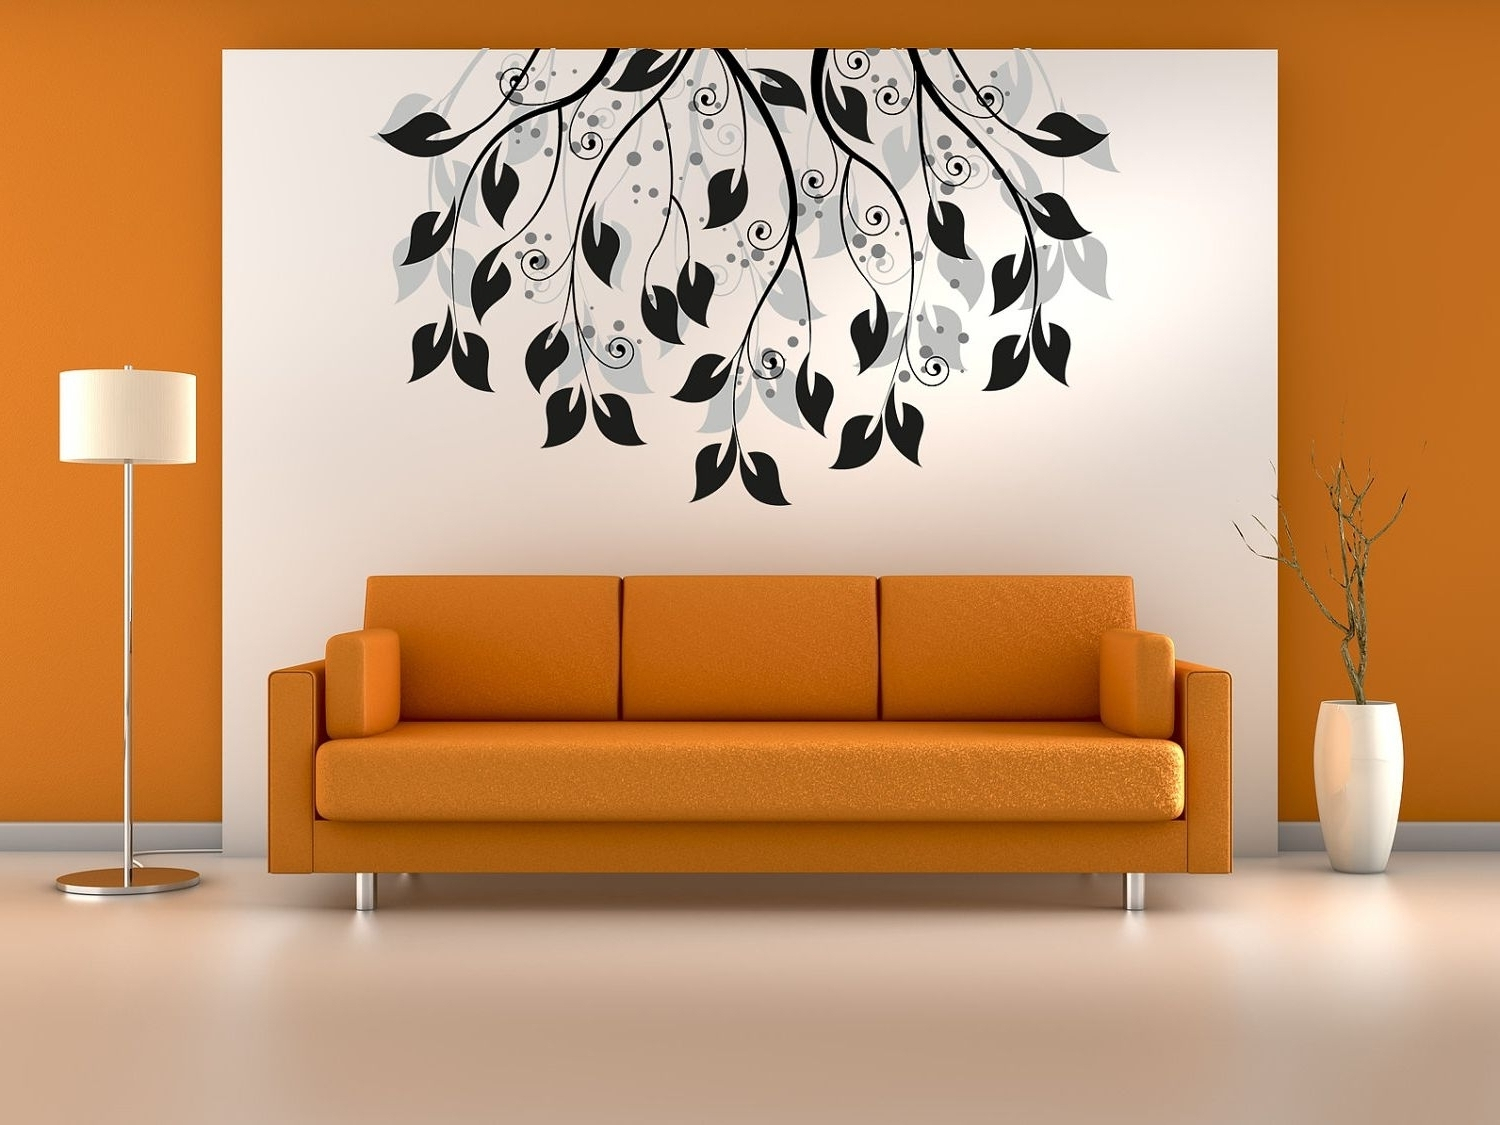 Popular Wall Art For Living Room Intended For Wall Art Designs: Living Room Wall Art Wall Art For Living Room (View 9 of 15)